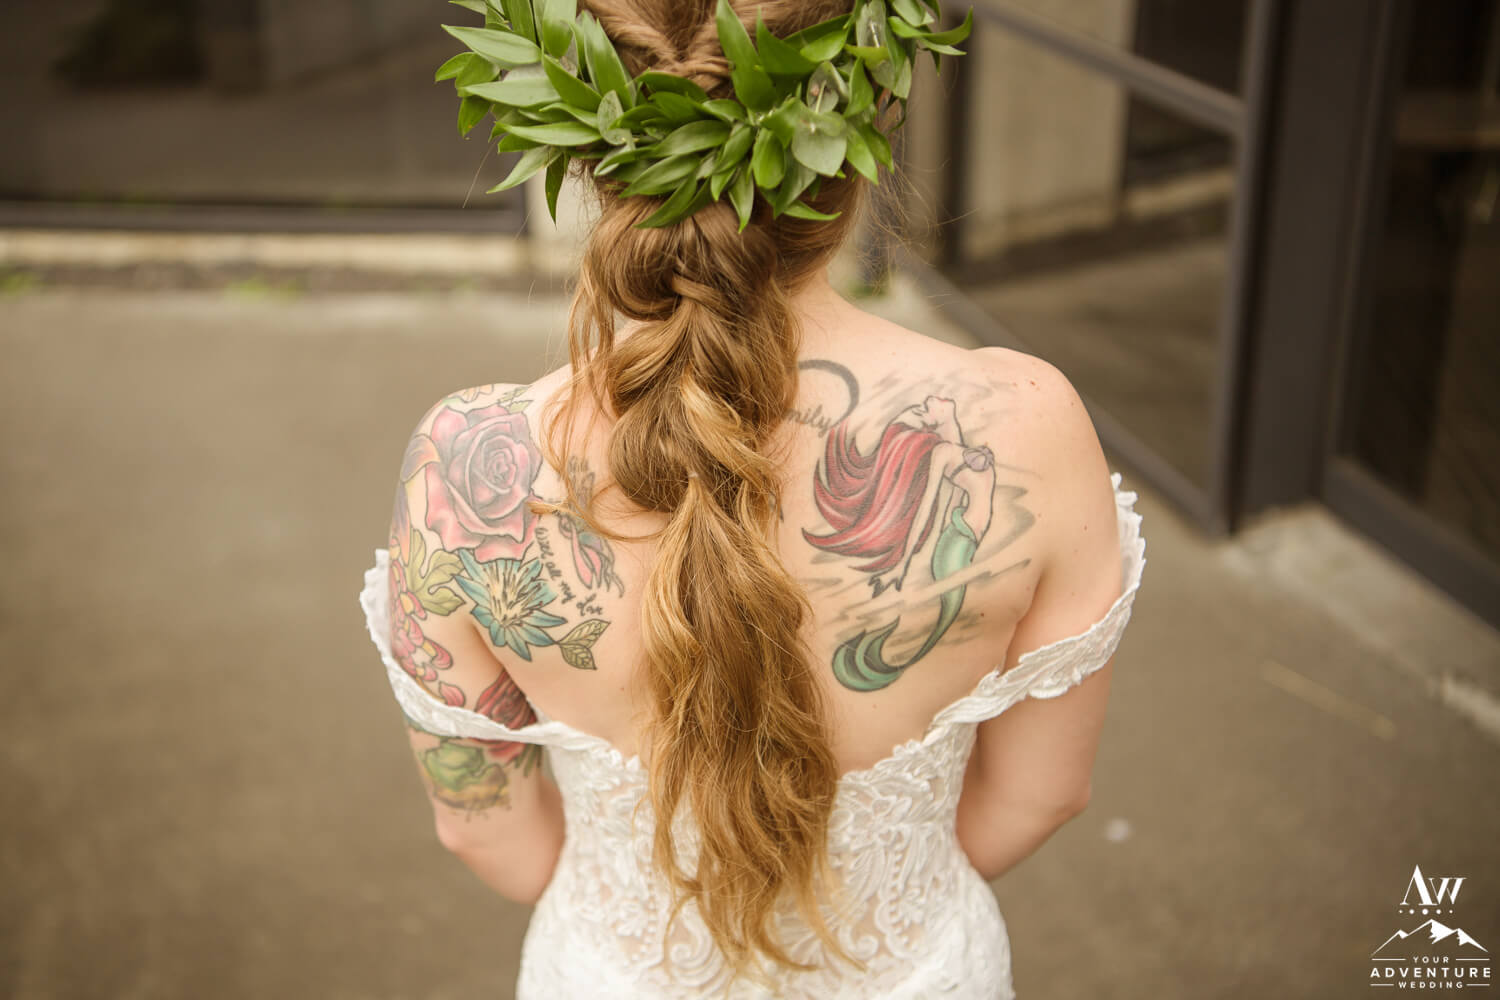 Hairstyle for Adventure Elopement